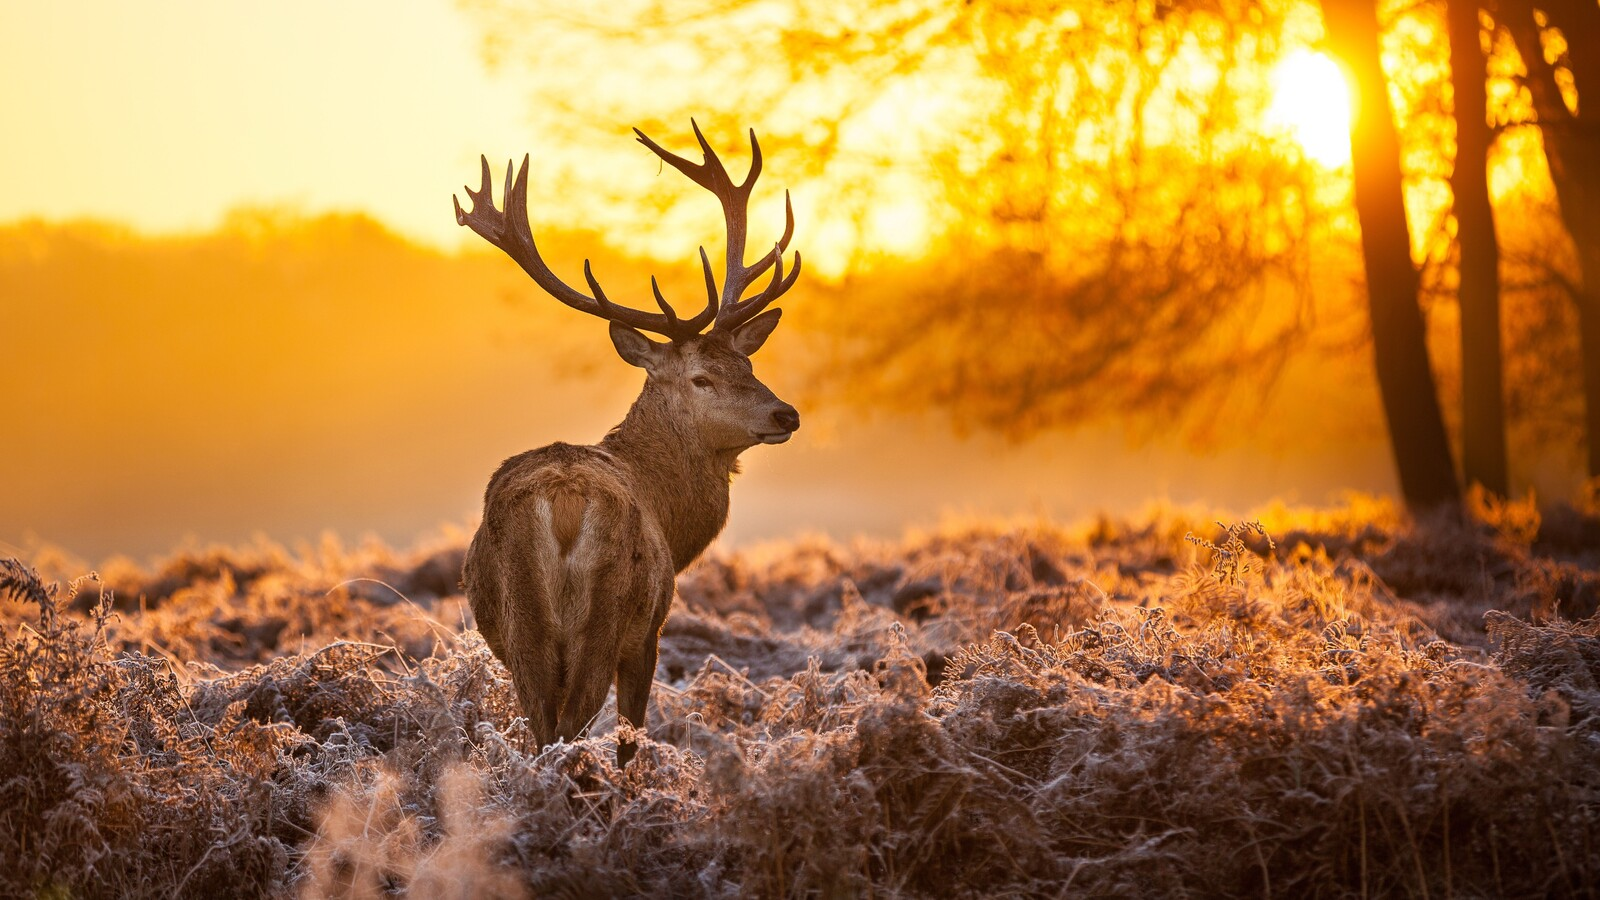 1600x900 deer in forest 1600x900 resolution hd 4k wallpapers, images